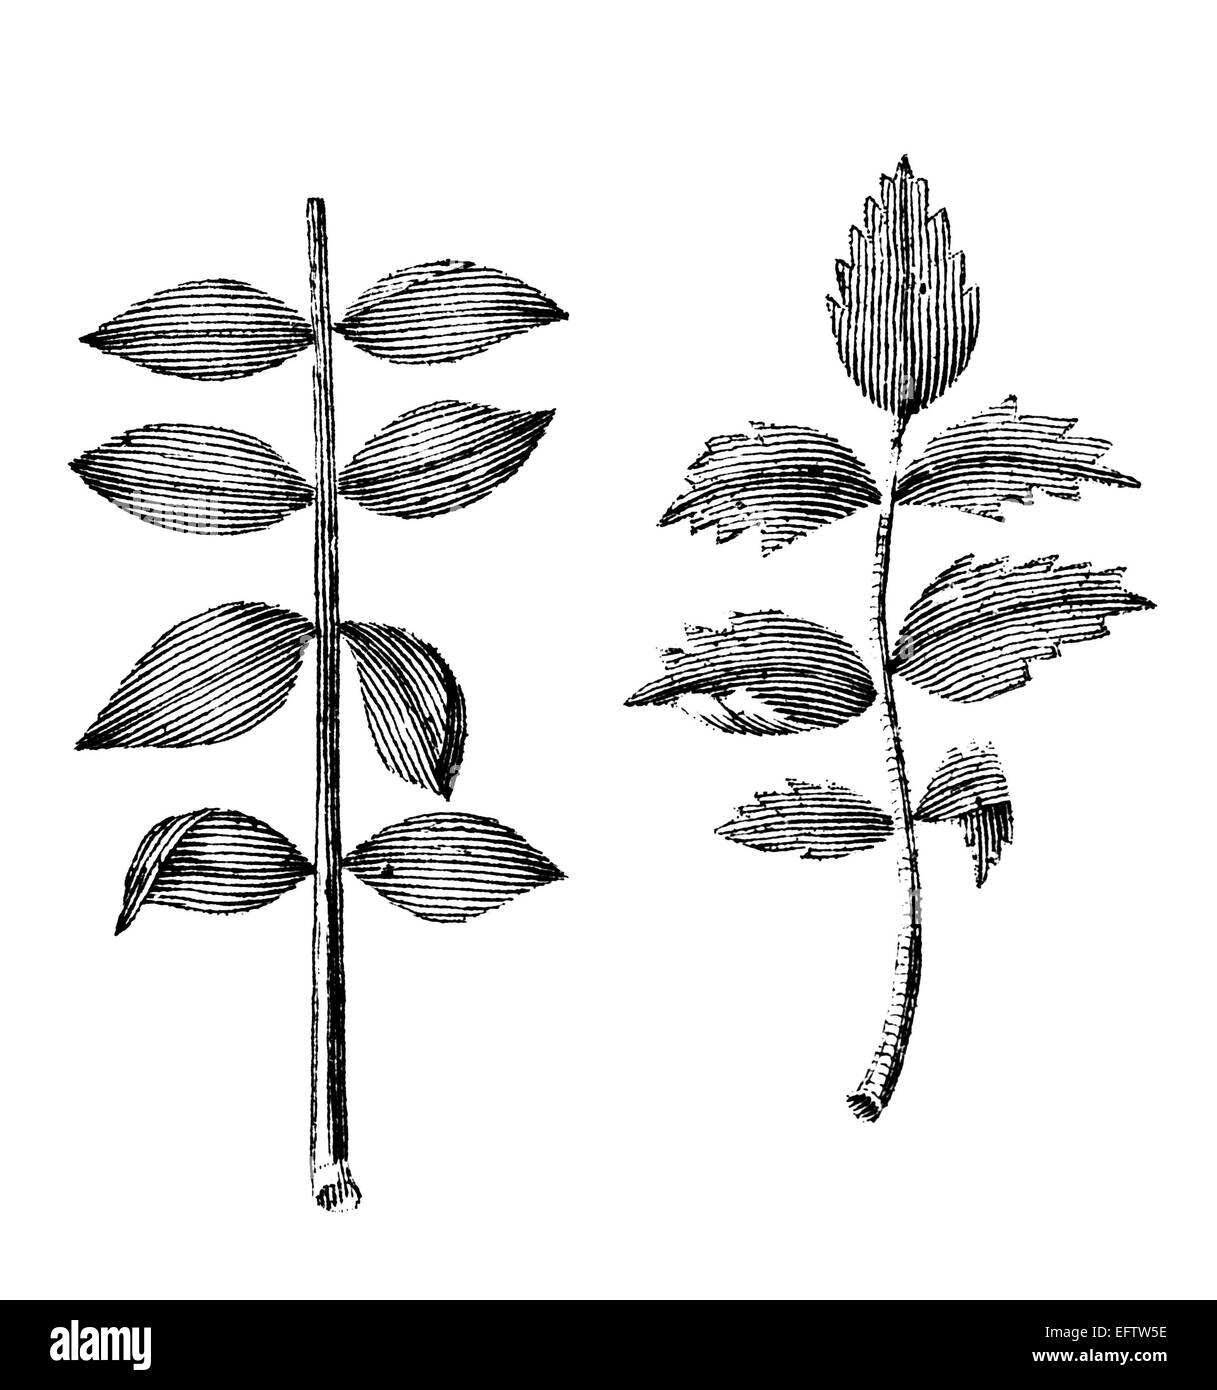 Victorian engraving of differnt plant stems and leaves. Digitally restored image from a mid-19th century Encyclopaedia. - Stock Image